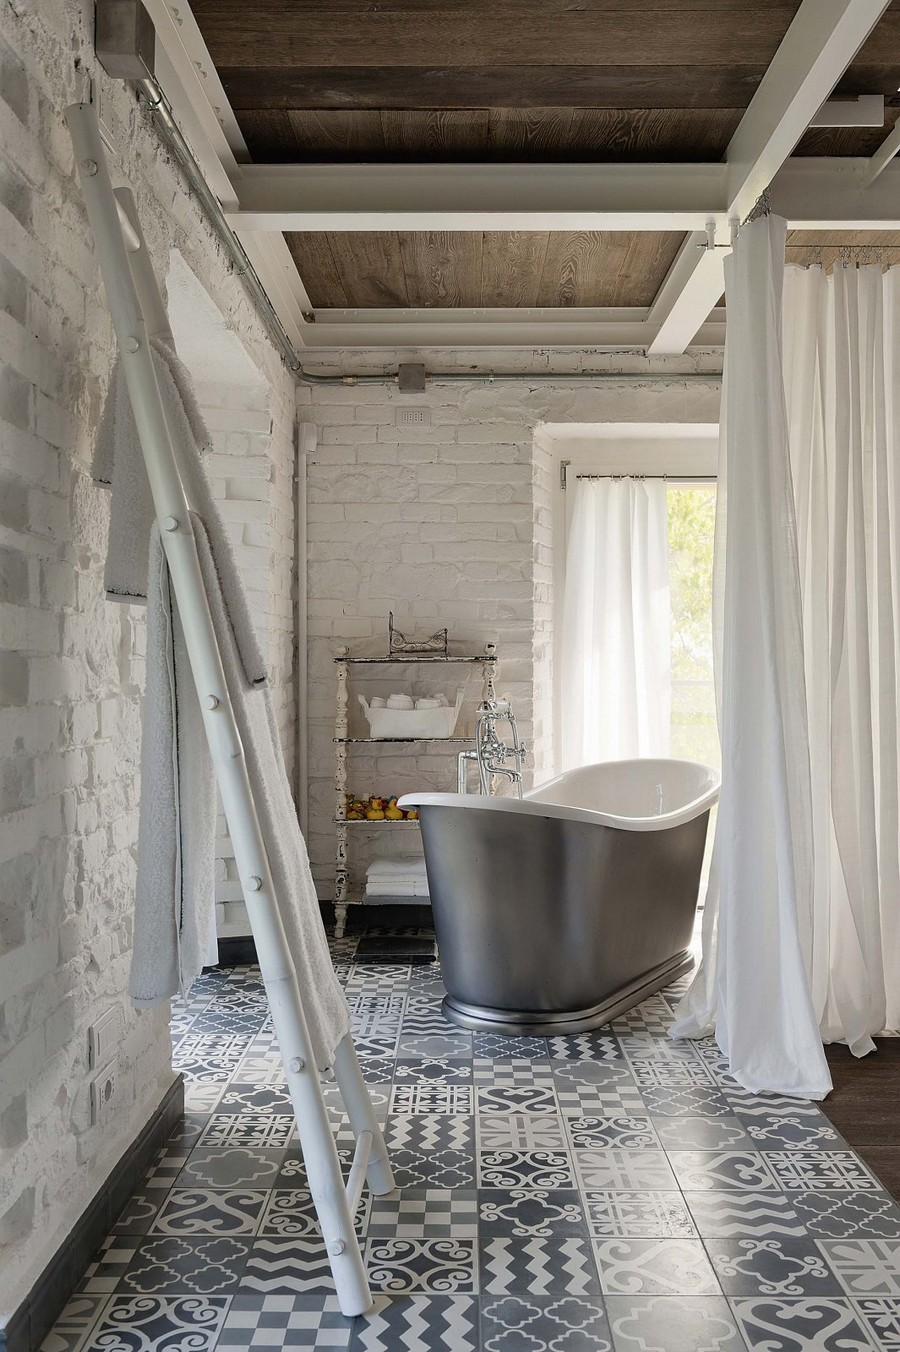 Start The Year With The Right Foot With The Bathroom Tile Trends 2019 Bathroom Tile Trends Start The Year With The Right Foot With The Bathroom Tile Trends 2019 Start The Year With The Right Foot With The Bathroom Tile Trends 2019